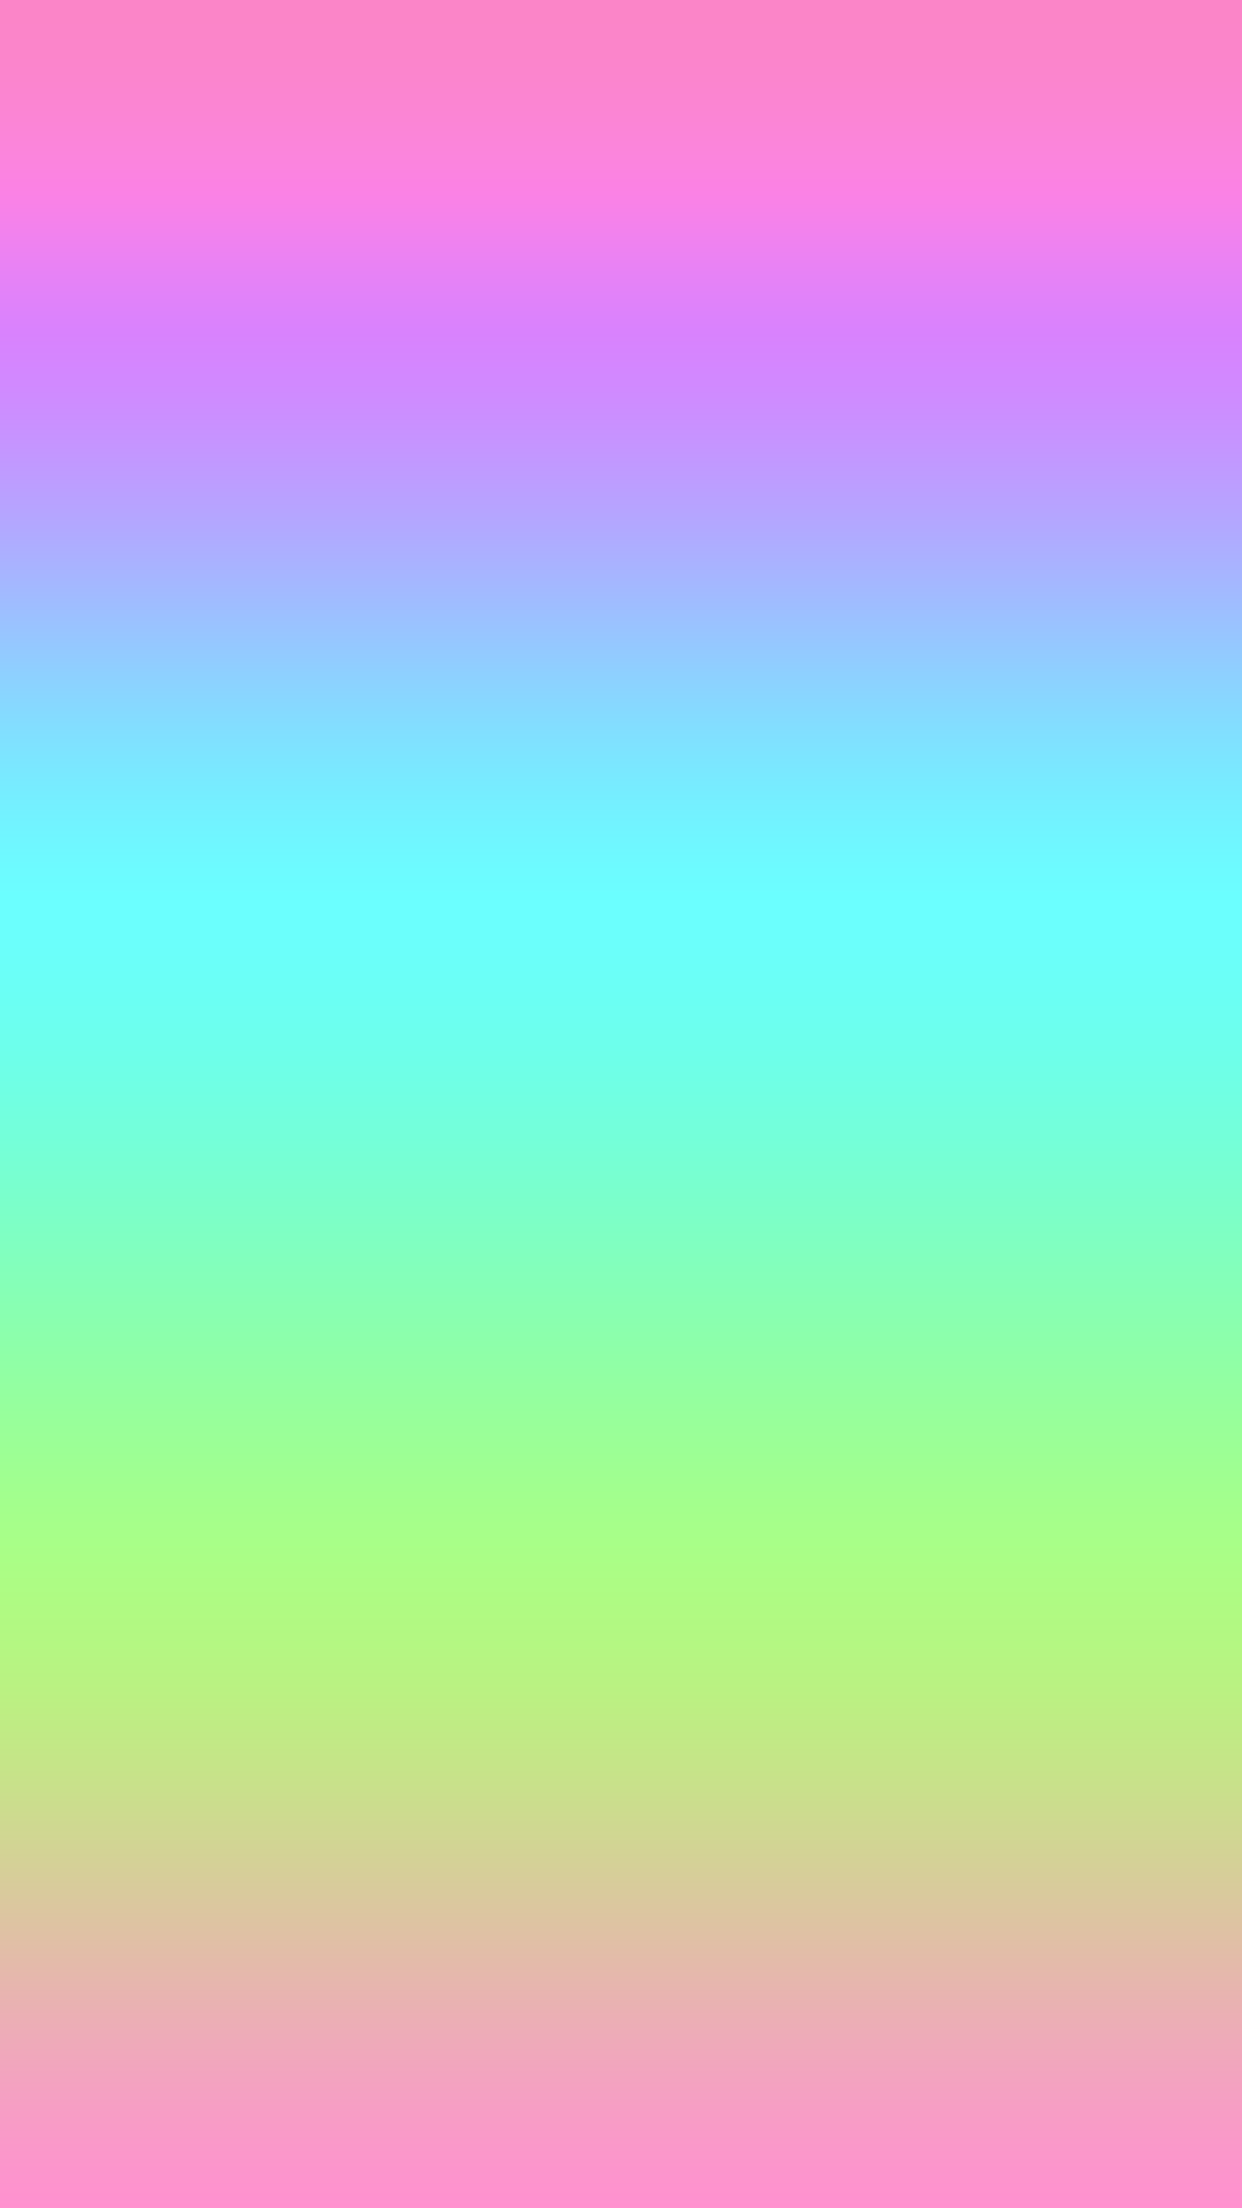 gradient, ombre, pink, blue, purple, green, wallpaper, hd, iphone